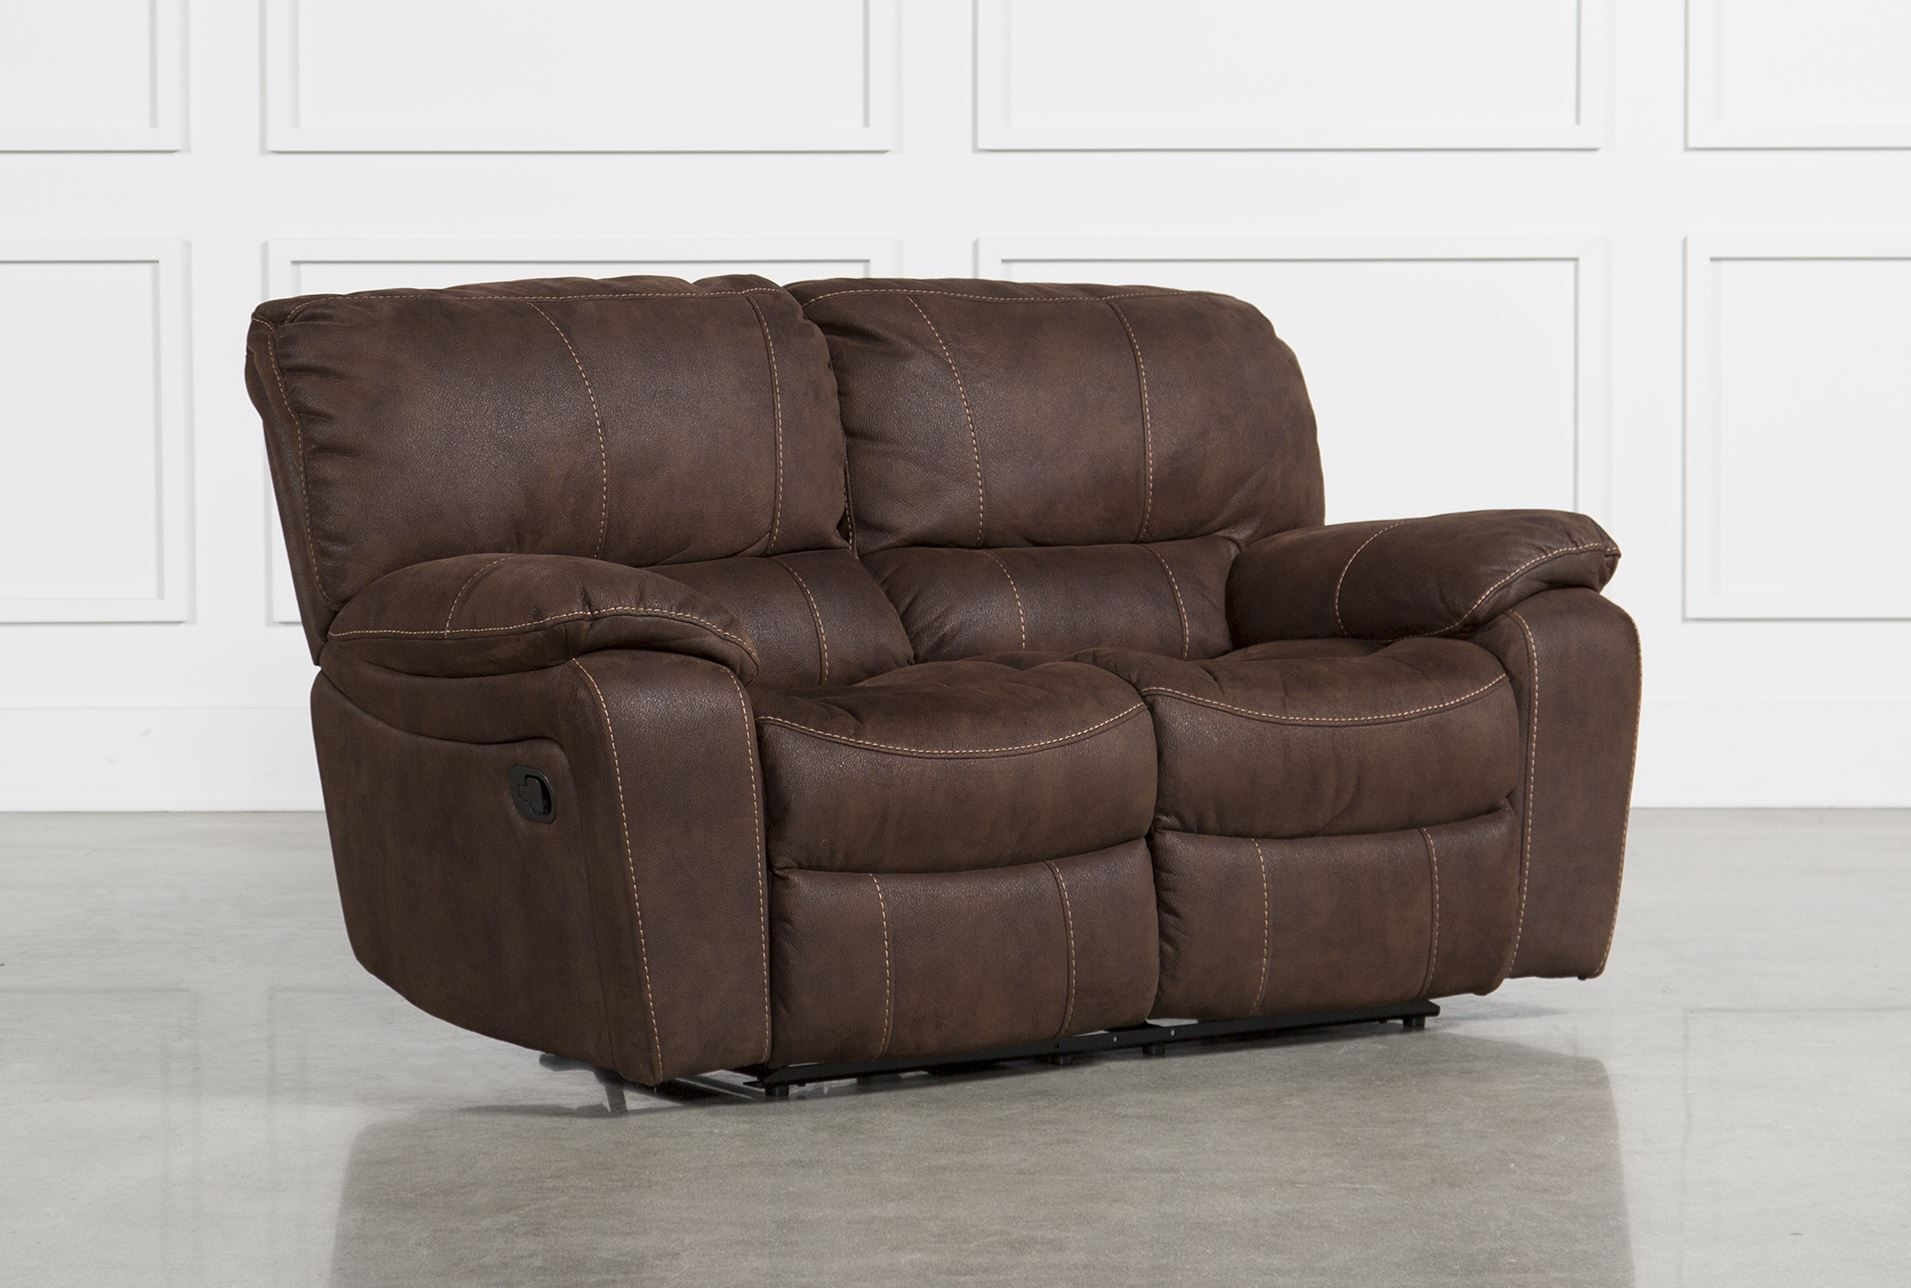 Langdon Reclining Loveseat - Signature | Sofas/loveseat | Pinterest pertaining to Tenny Cognac 2 Piece Right Facing Chaise Sectionals With 2 Headrest